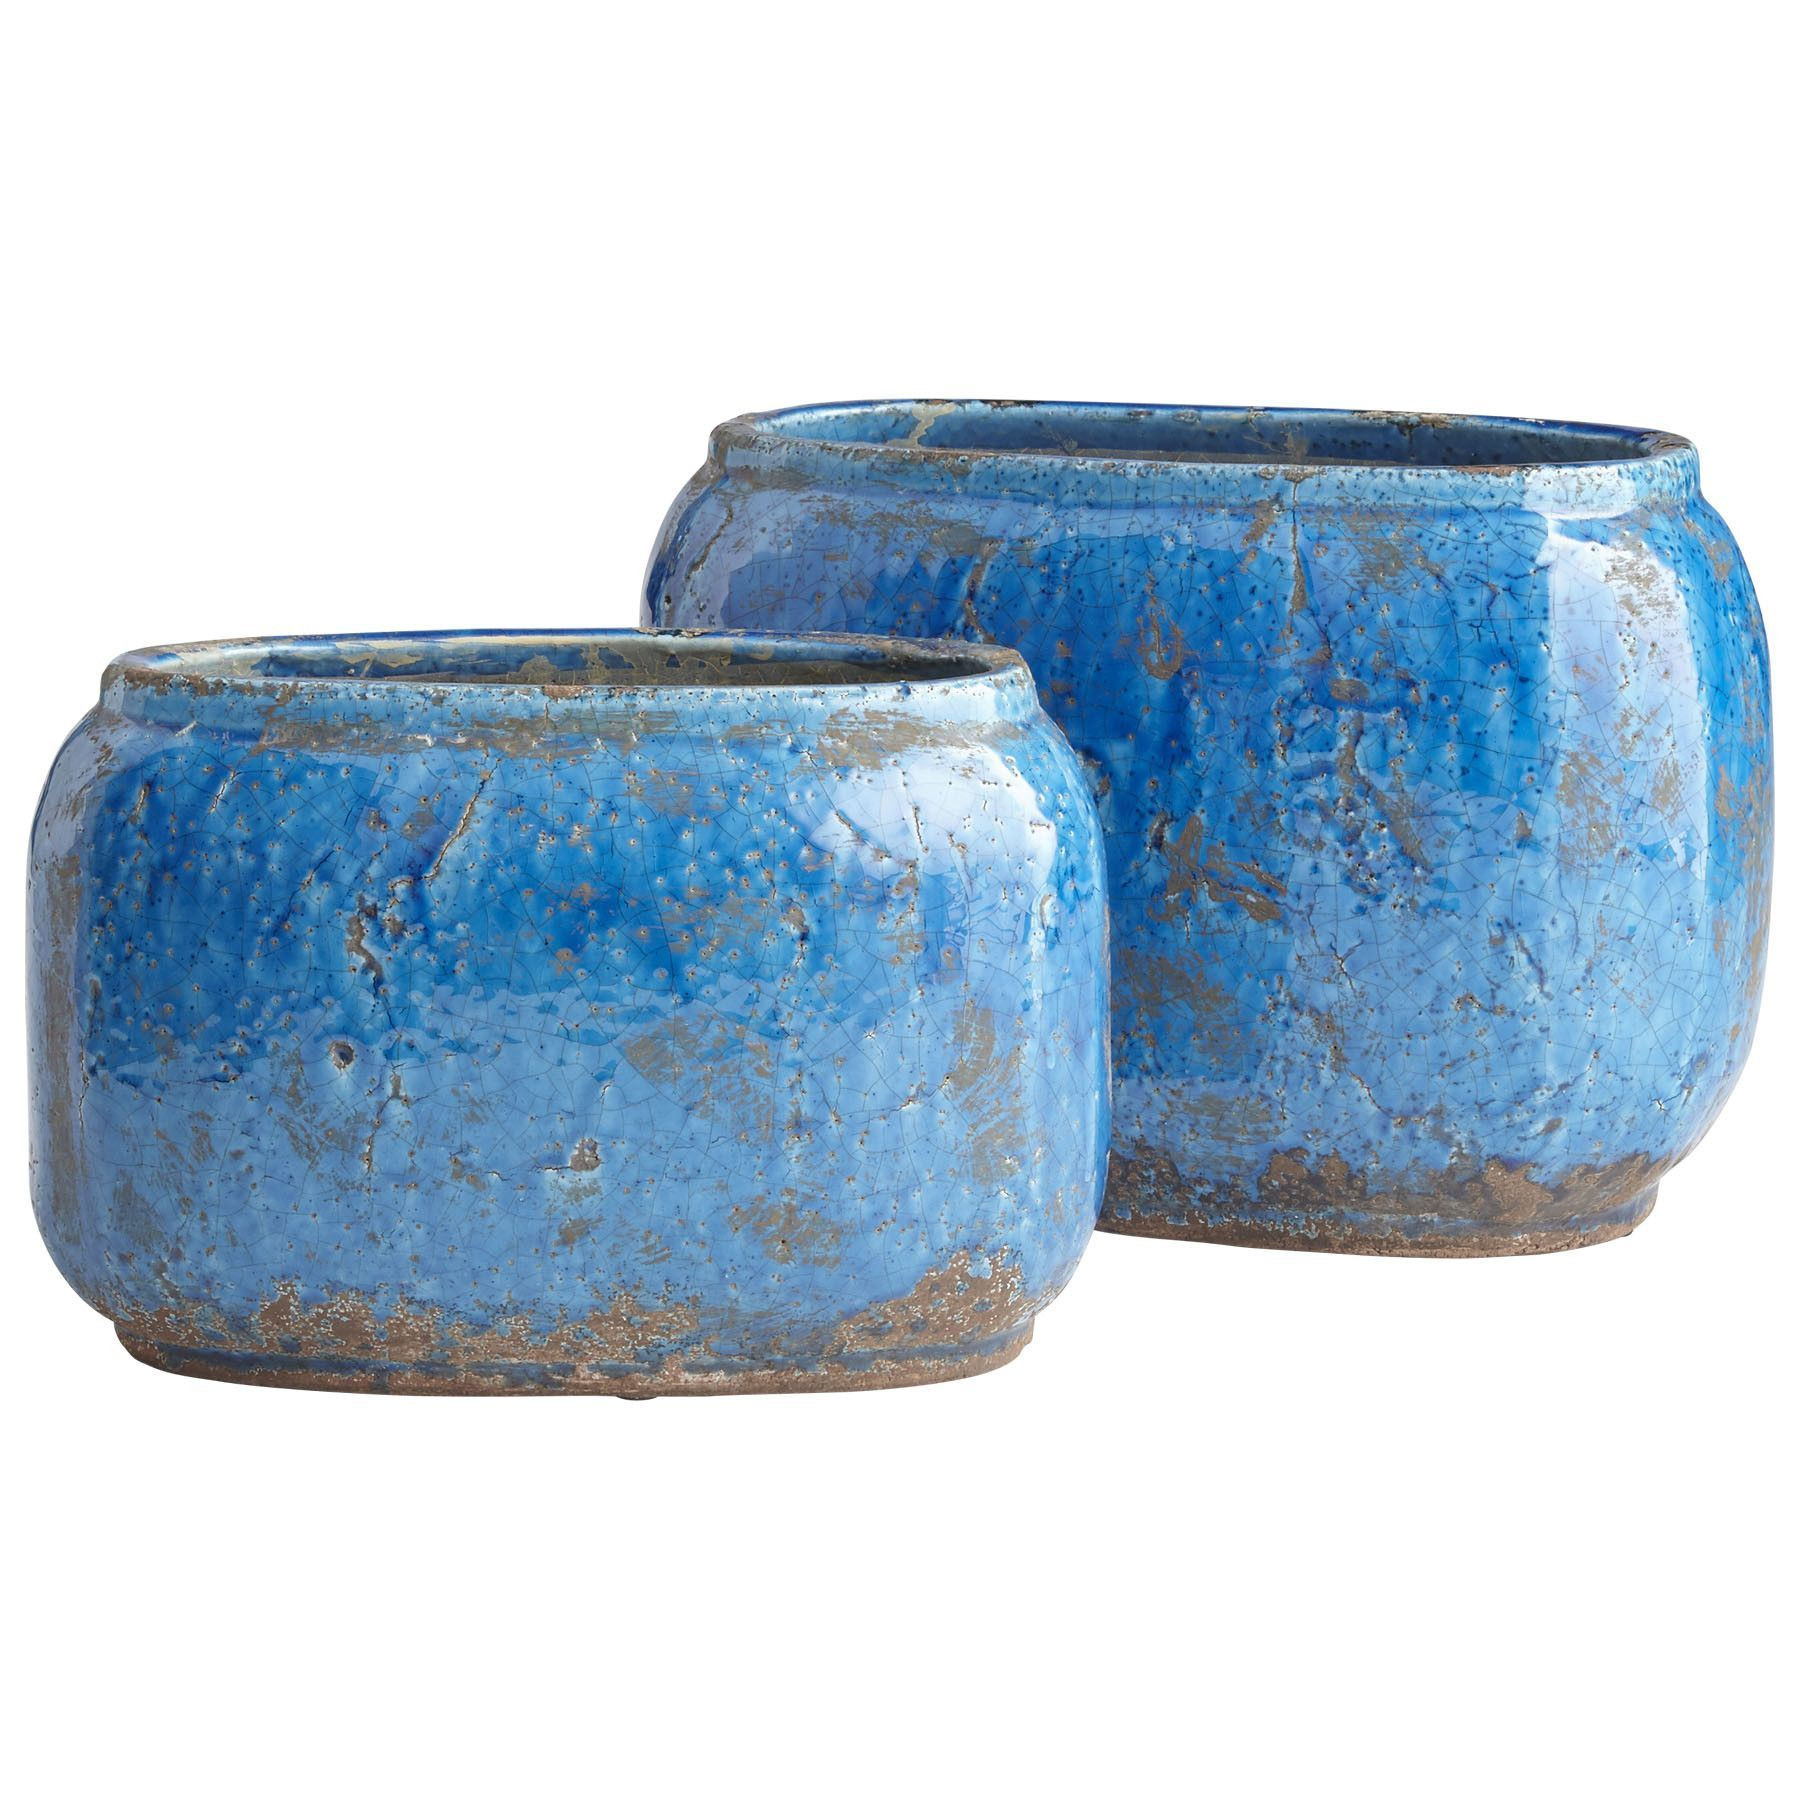 Blue Terracotta Vase Of Ventura Planter Large Vases Bowls Trays Platters Of Chez Intended for Large Ventura Planter is Constructed Of Terracotta with A Blue Glaze Finish